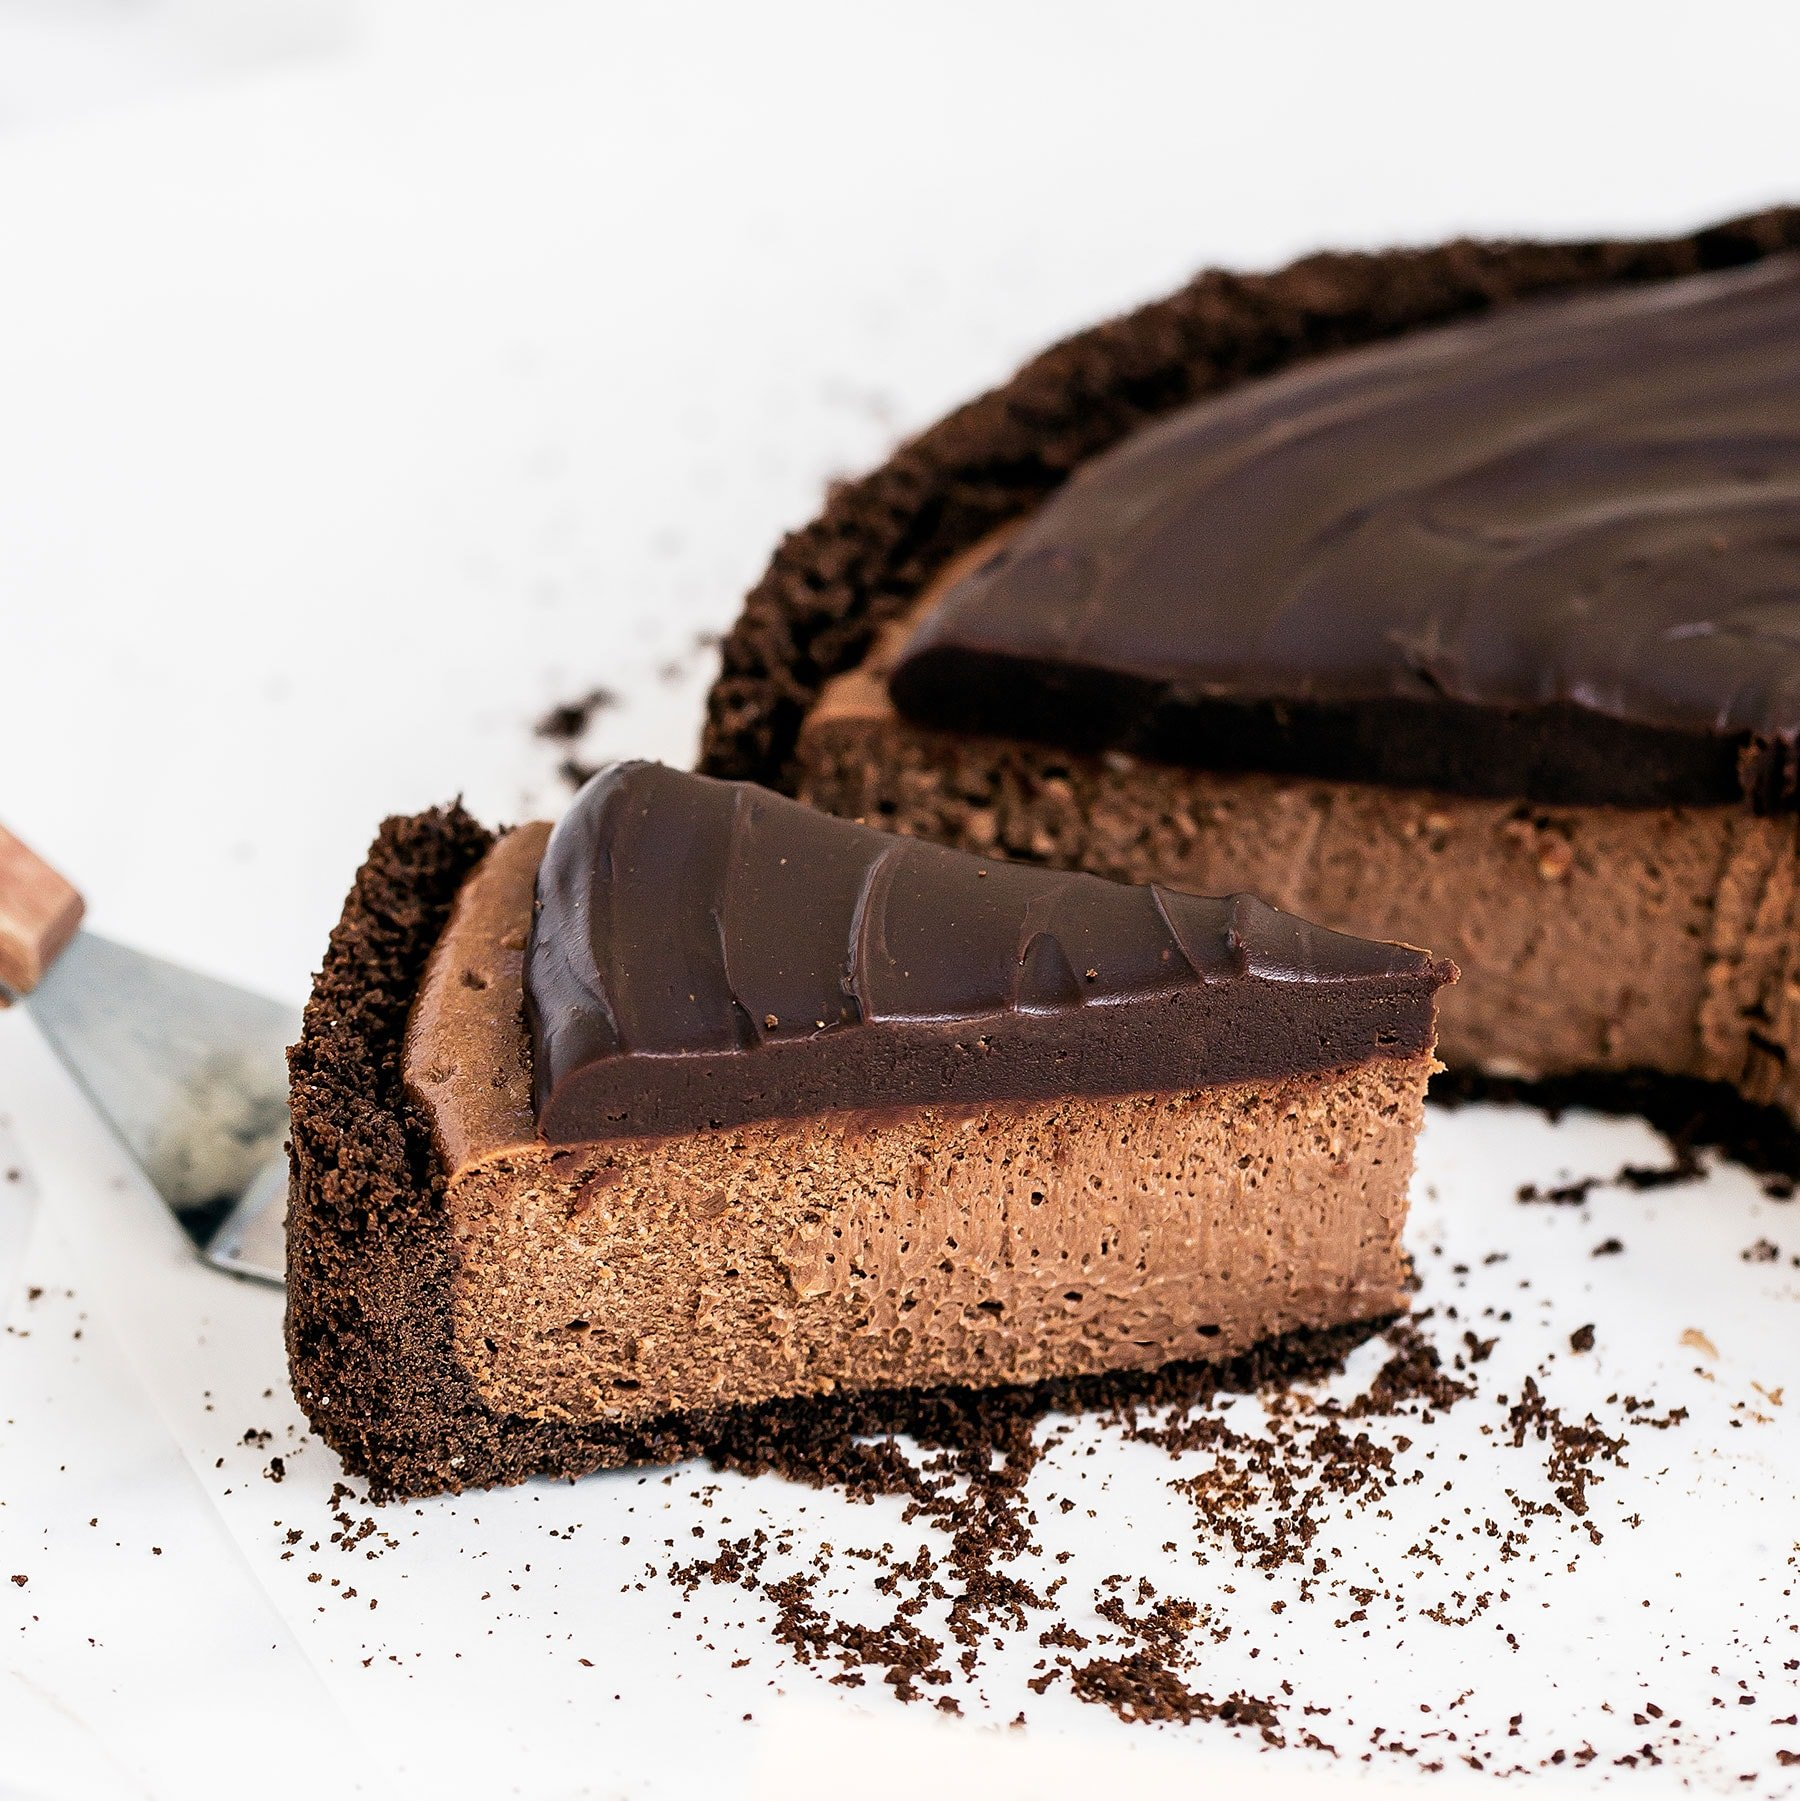 Insanely decadent Death by Chocolate Cheesecake features chocolate in FOUR forms: chocolate cookie crust, double chocolate cheesecake filling, with a chocolate ganache topping. It doesn't get better than this!